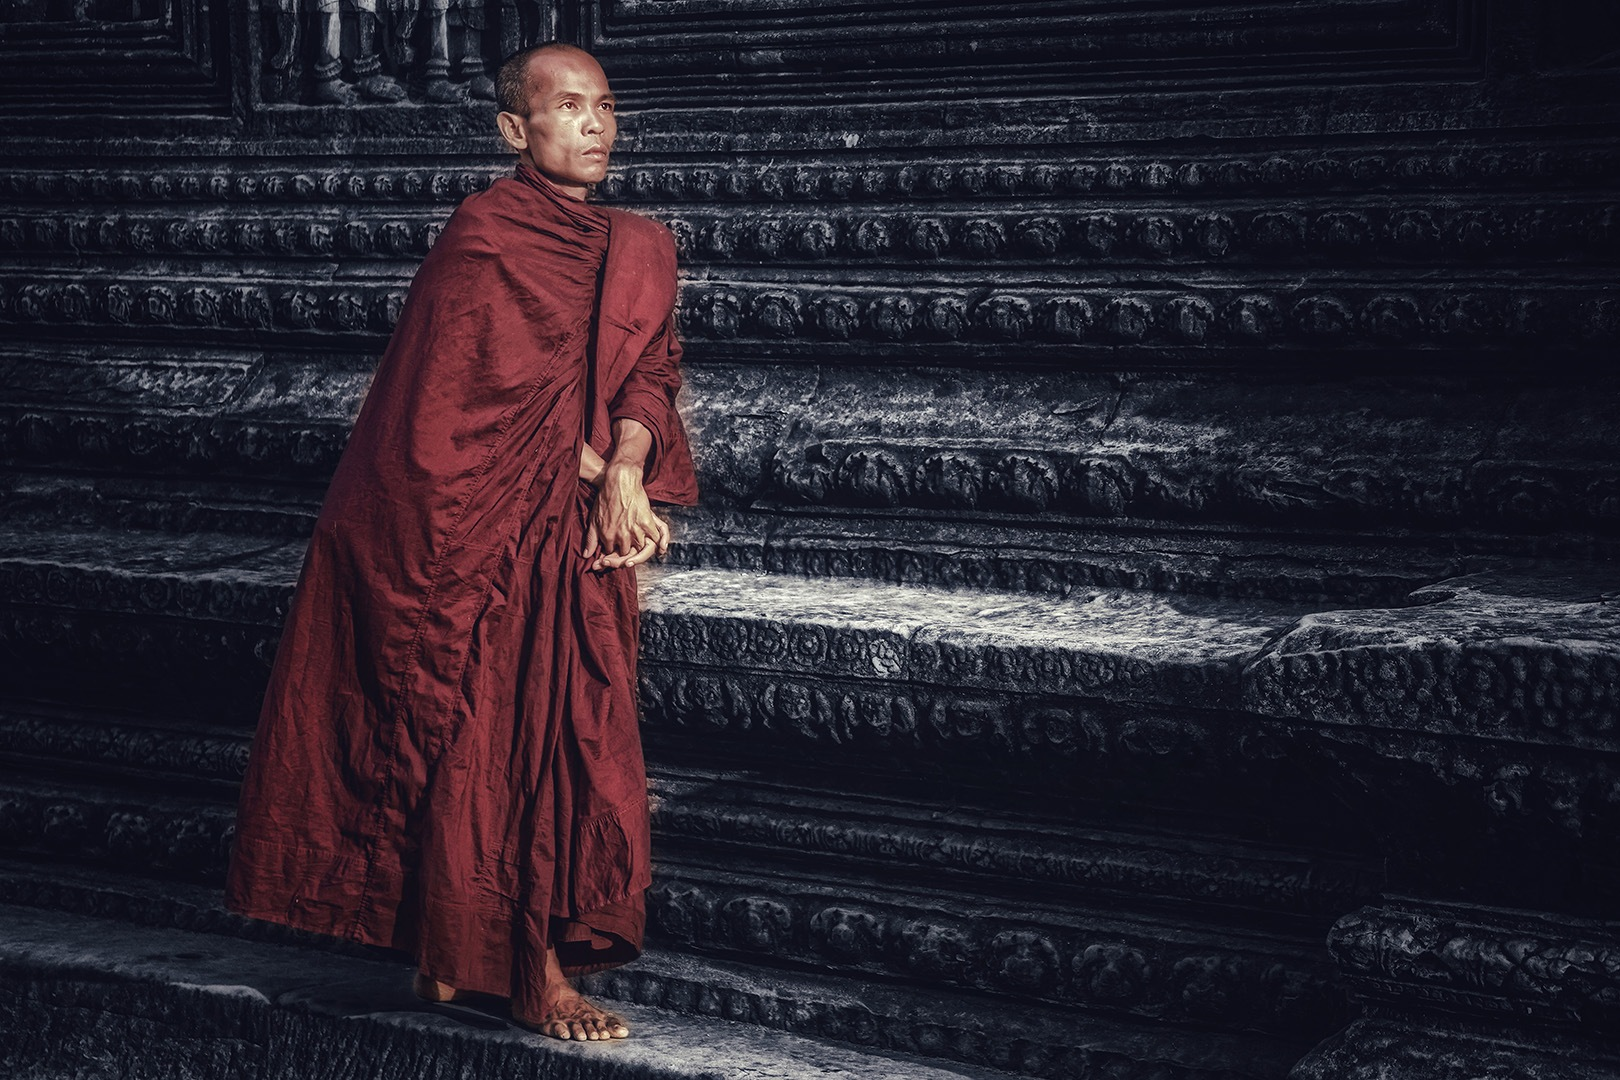 The monk meets the dawn in Angkor Wat by Max Mishin